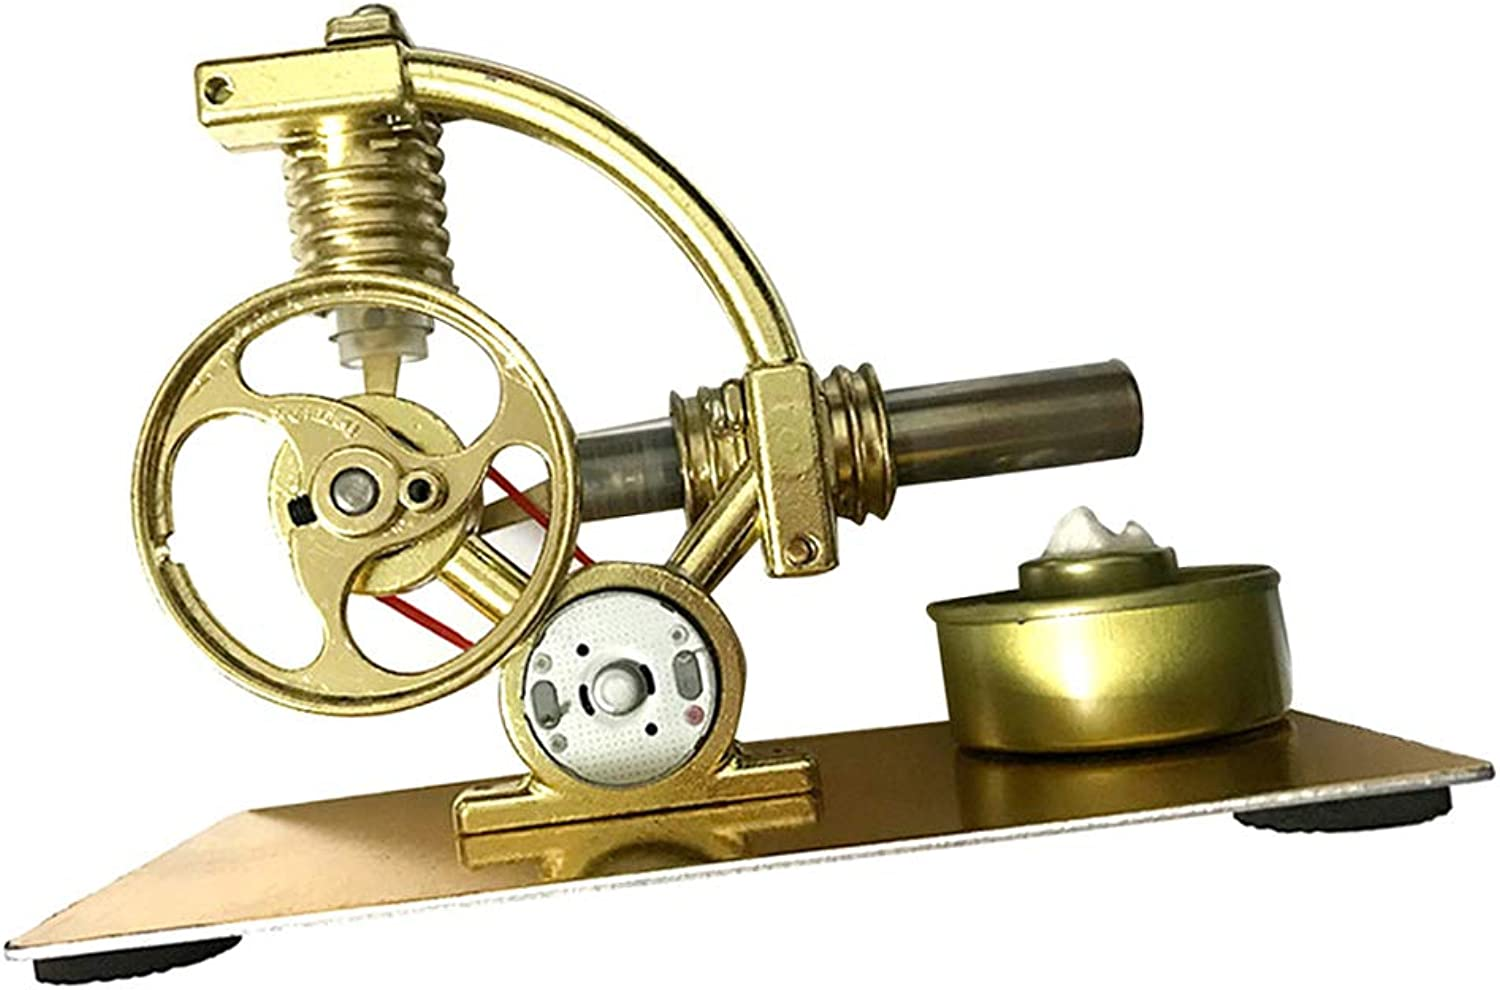 Kesoto Hot Air Stirling Engine Model, Conversion of Heat Energy to Mechanical Work